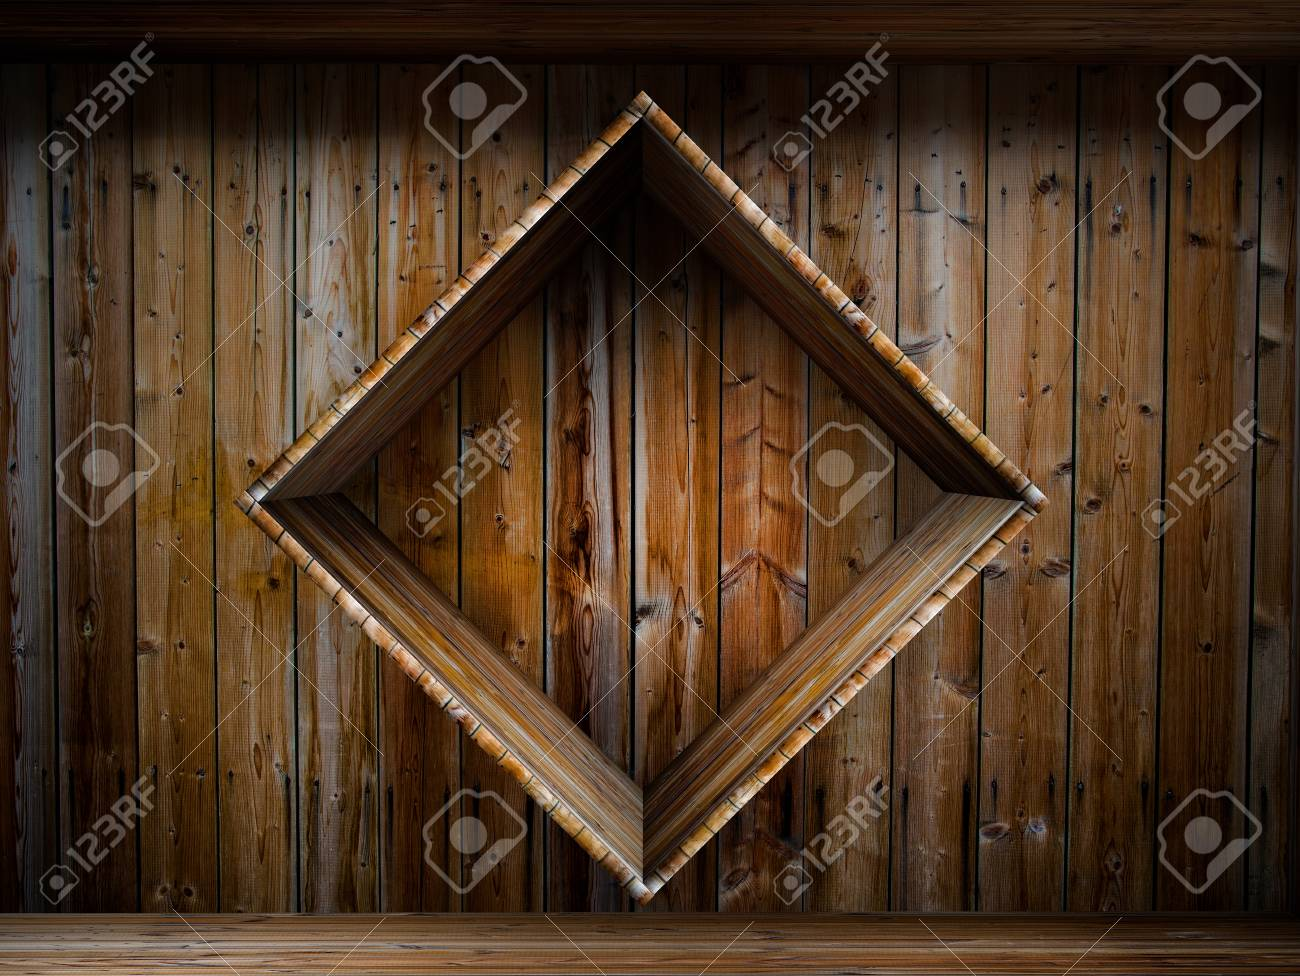 3D empty wood shelf  grunge interior for your objects Stock Photo - 17990905